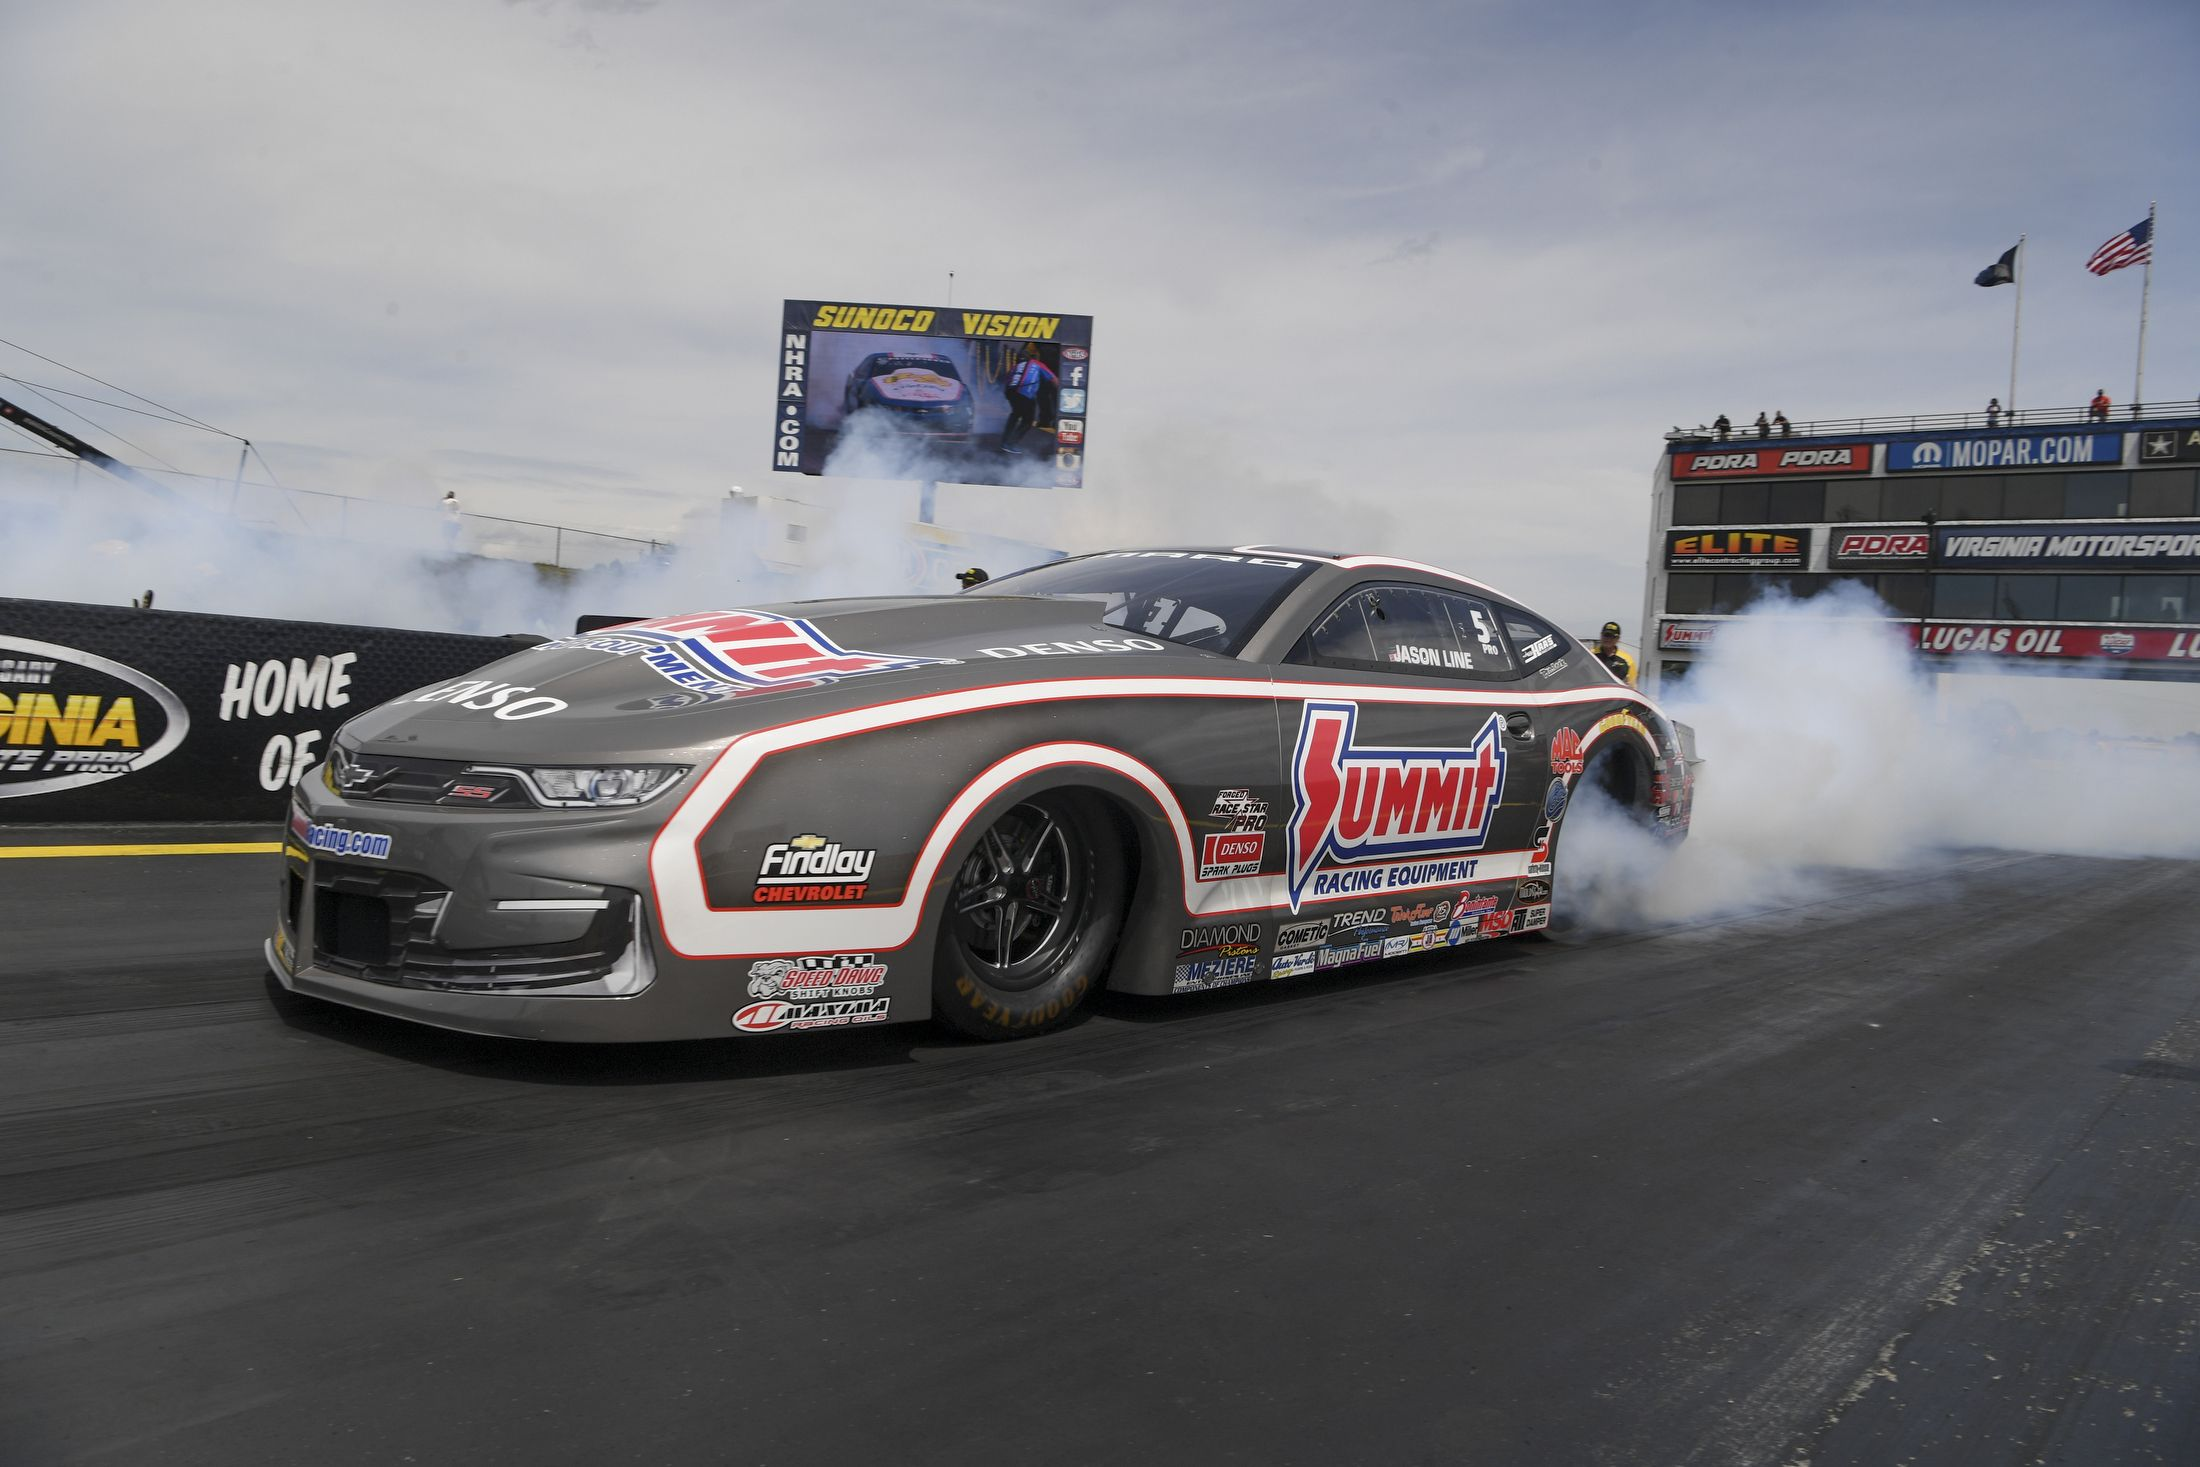 3-time NHRA Champion Jason Line to Retire from Pro Stock after 2020